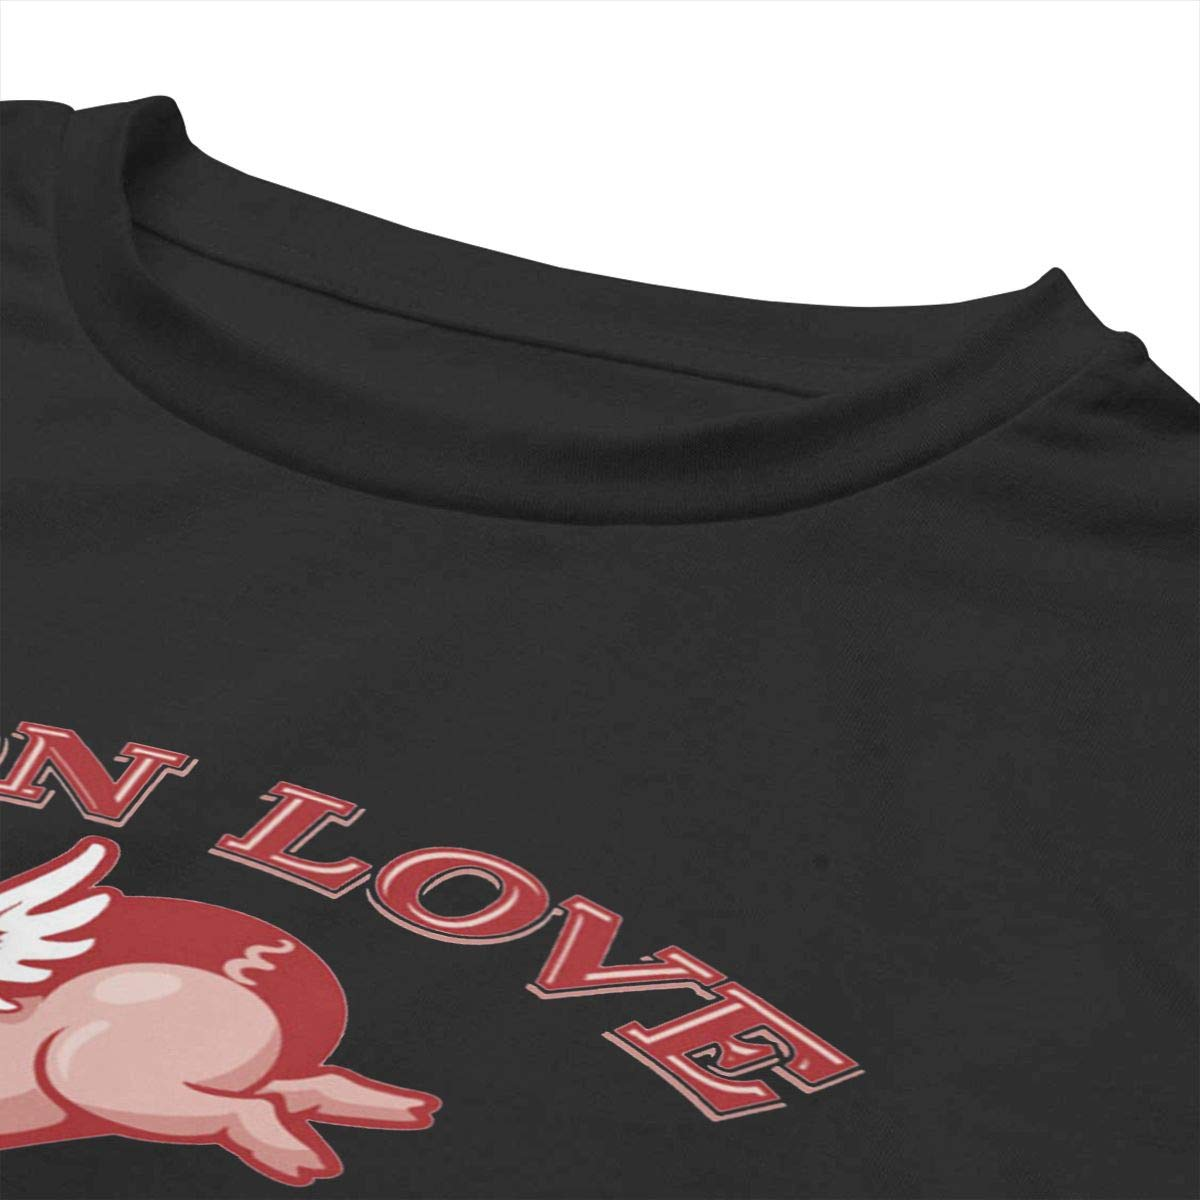 Little Pig is Angel of Love Womens Summer Short Sleeve Print Crop Top T Shirt Teen Girls